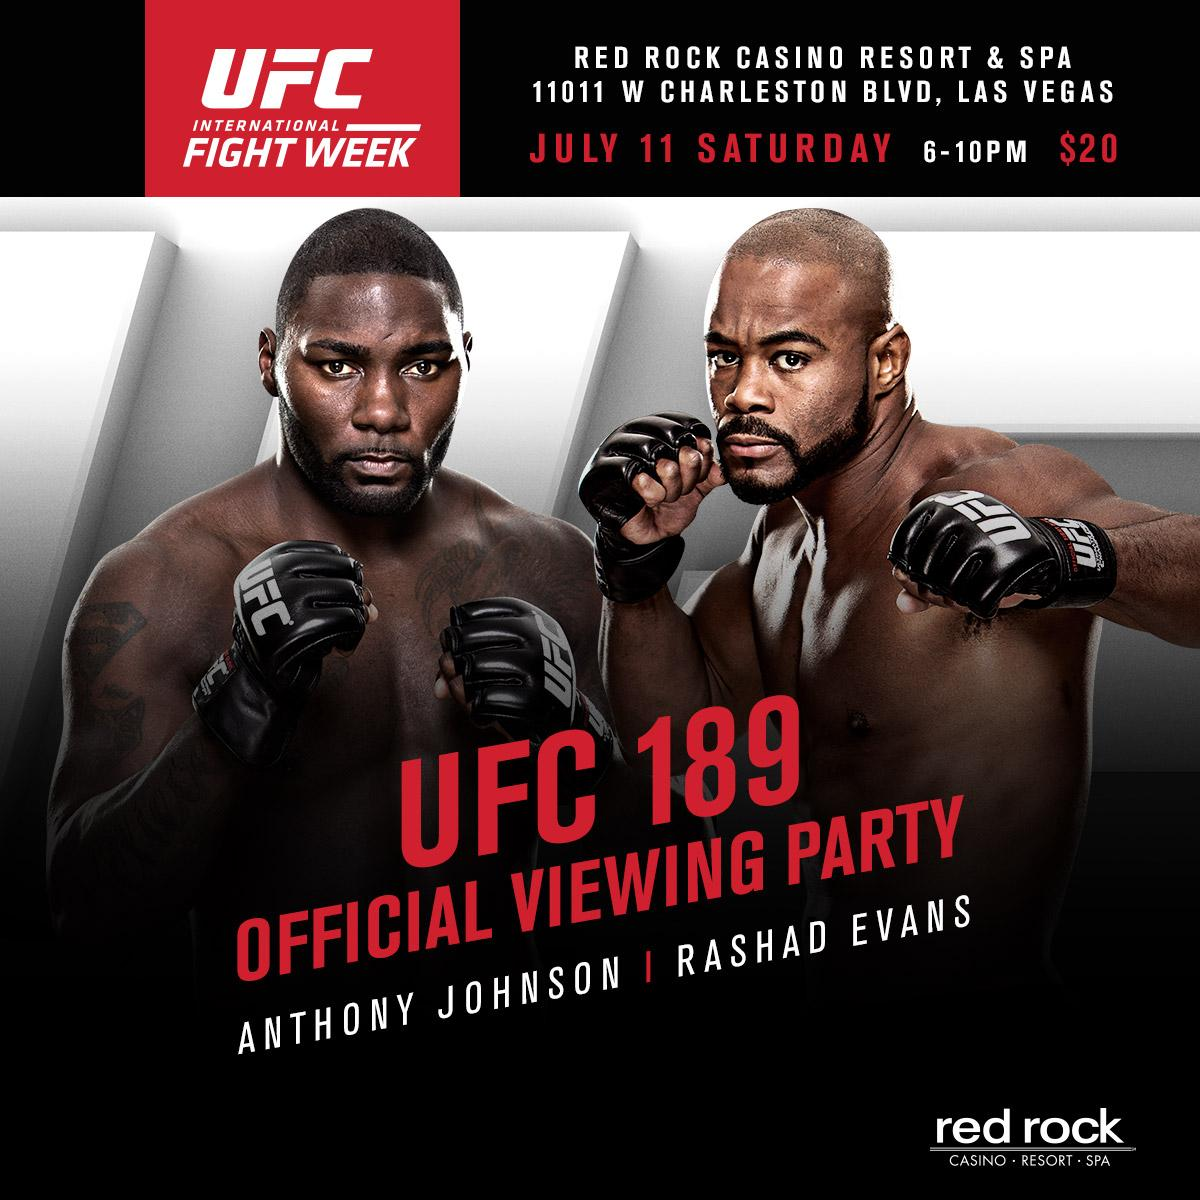 Join us this Saturday for our @ufc Viewing Party hosted by @Anthony_Rumble & @SugaRashadEvans! #UFCFIGHTWEEK http://t.co/pT79bn0g8h